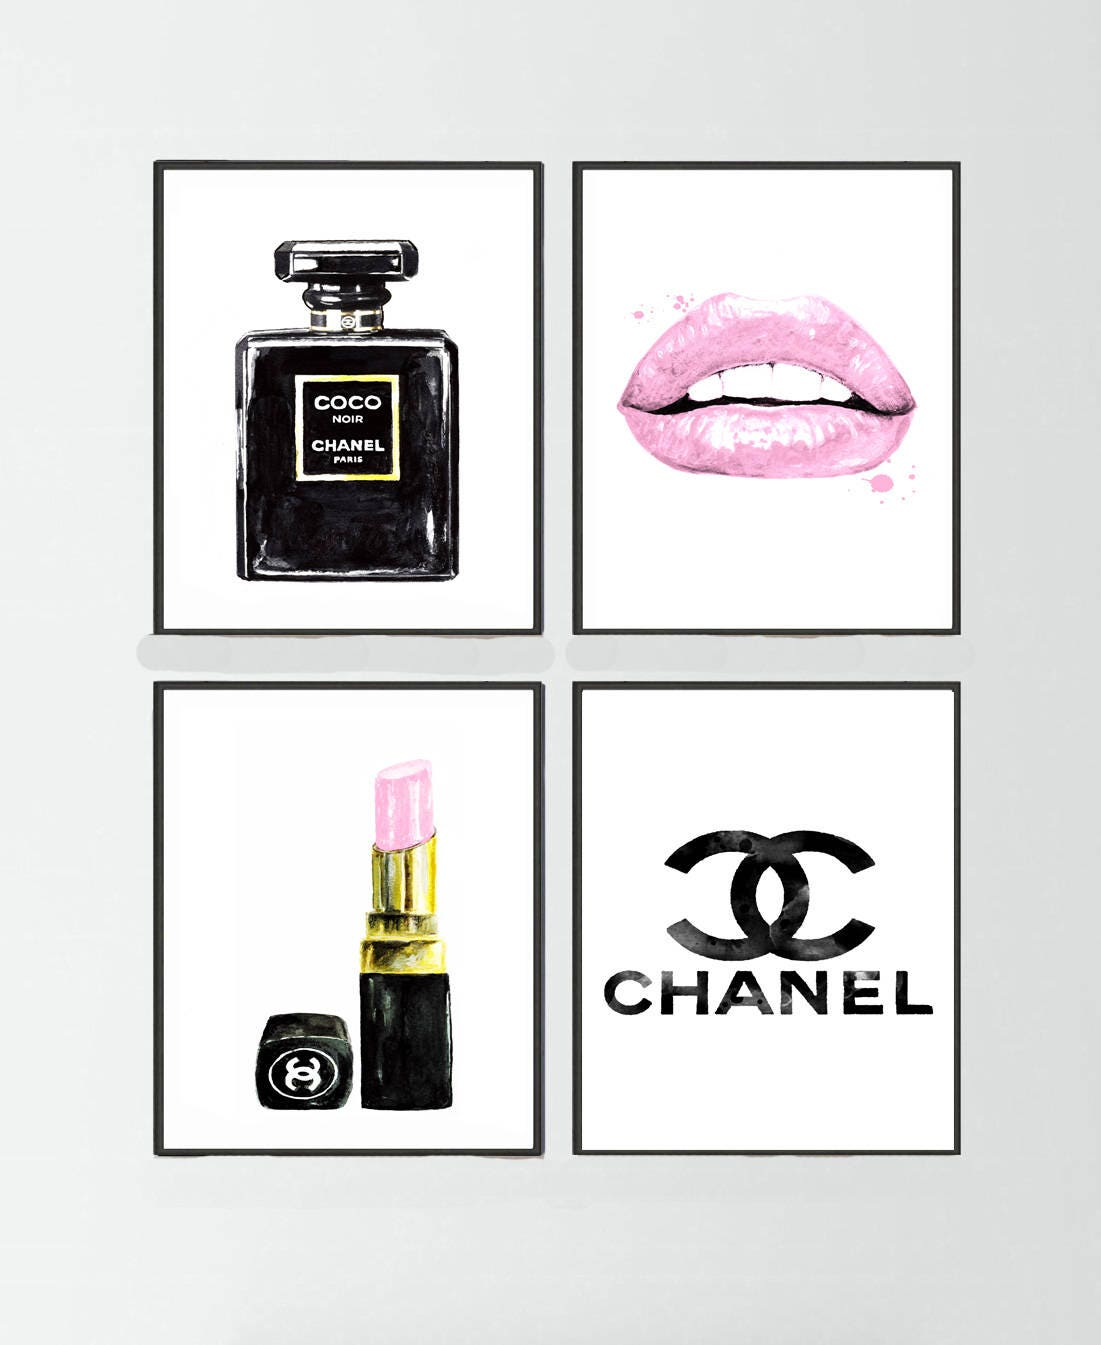 4 set coco chanel noir parfum chanel lippenstift chanel logo. Black Bedroom Furniture Sets. Home Design Ideas